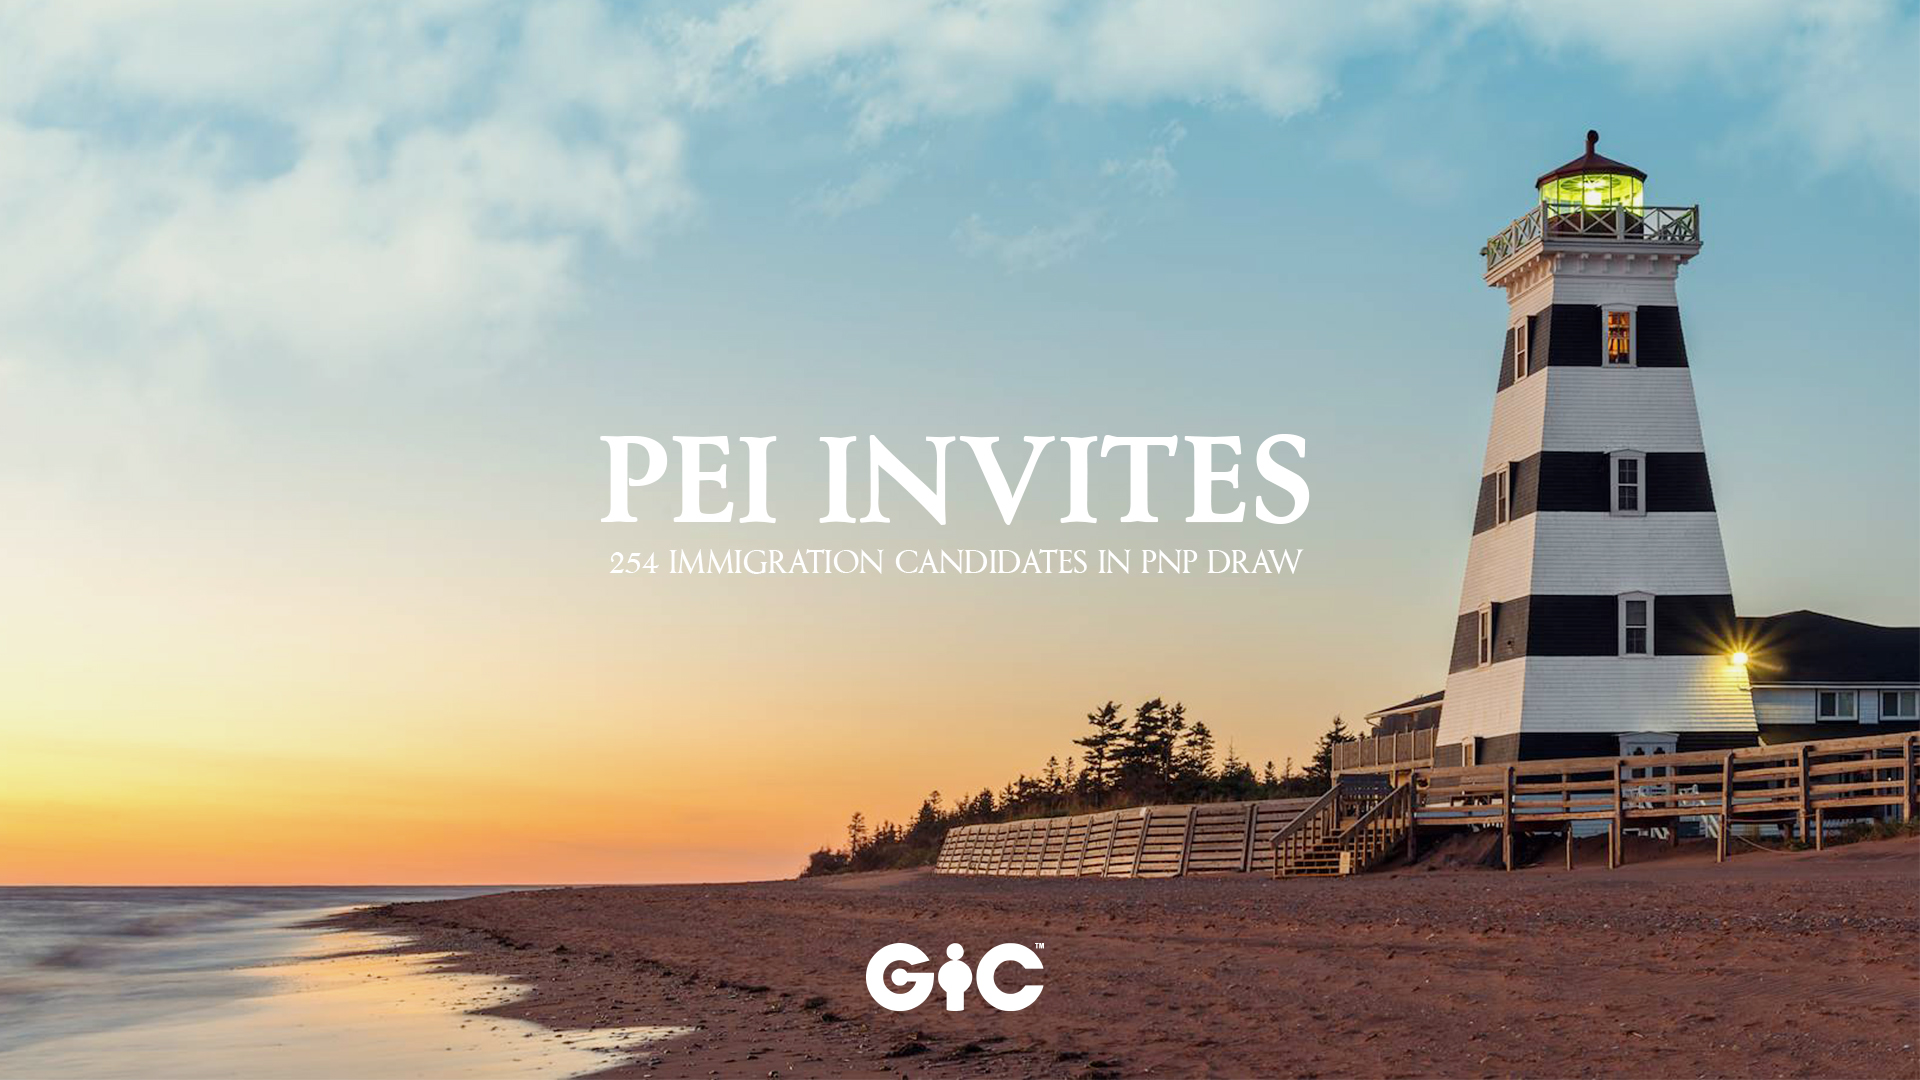 PEI invites 254 immigration candidates in PNP draw